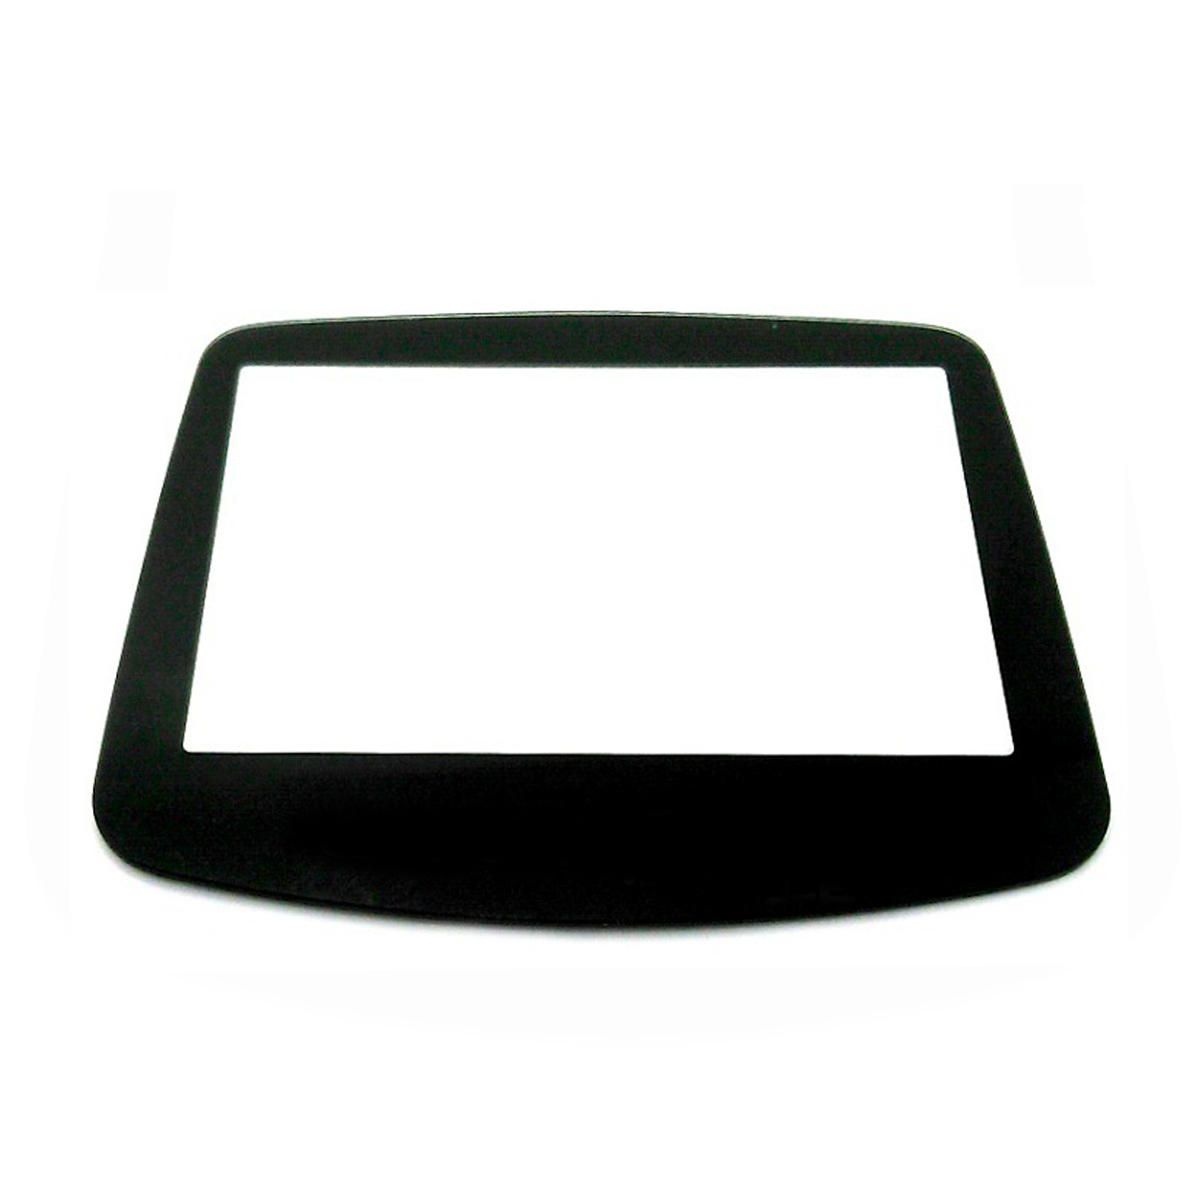 LBV US$3.24 Holographic Glass Screen Lens Scratch Resistant For Game Boy Advance GBA